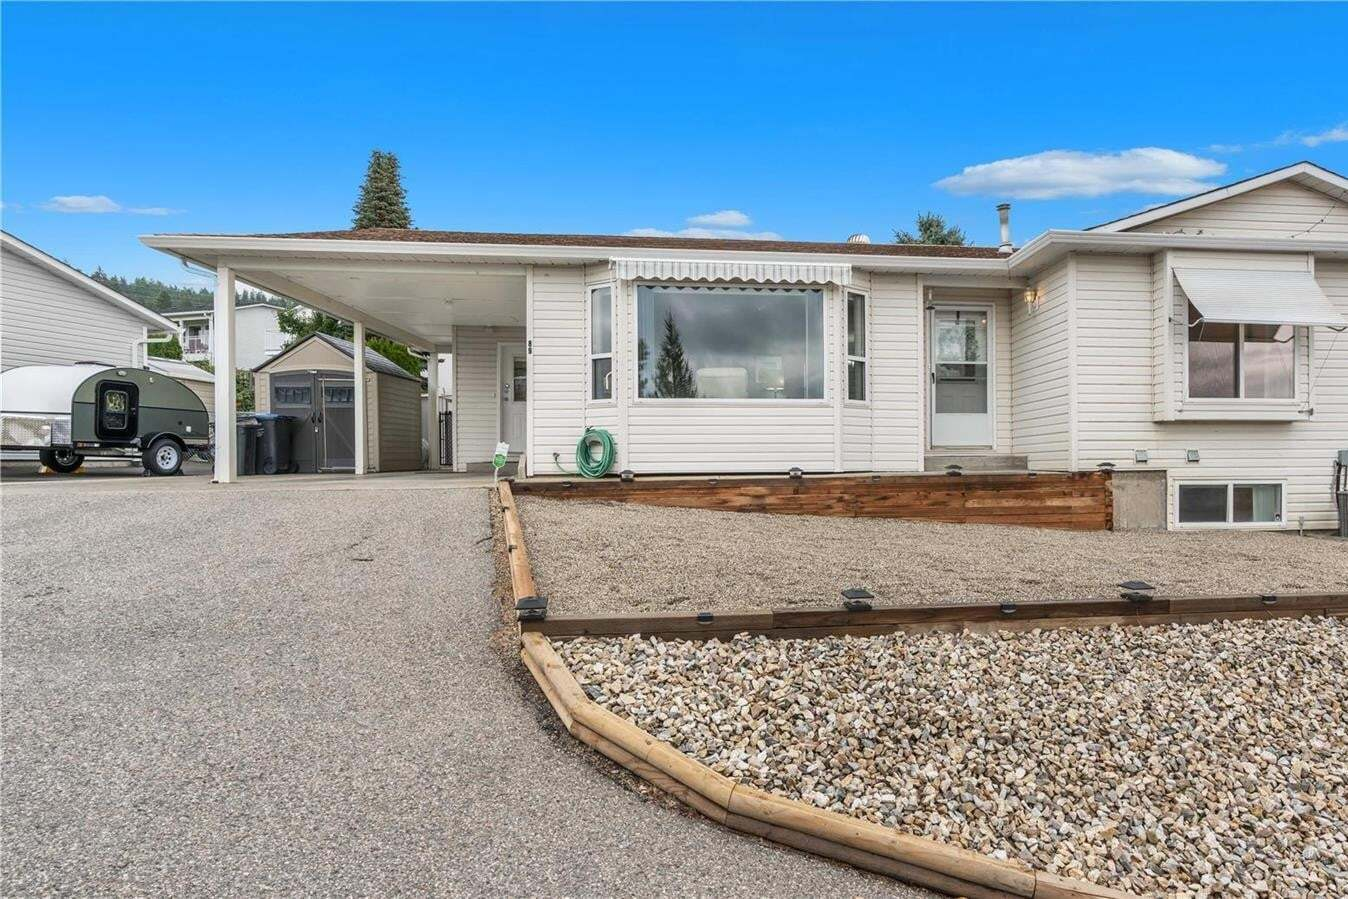 House for sale at 6401 Spencer Rd Unit 89 Kelowna British Columbia - MLS: 10217925